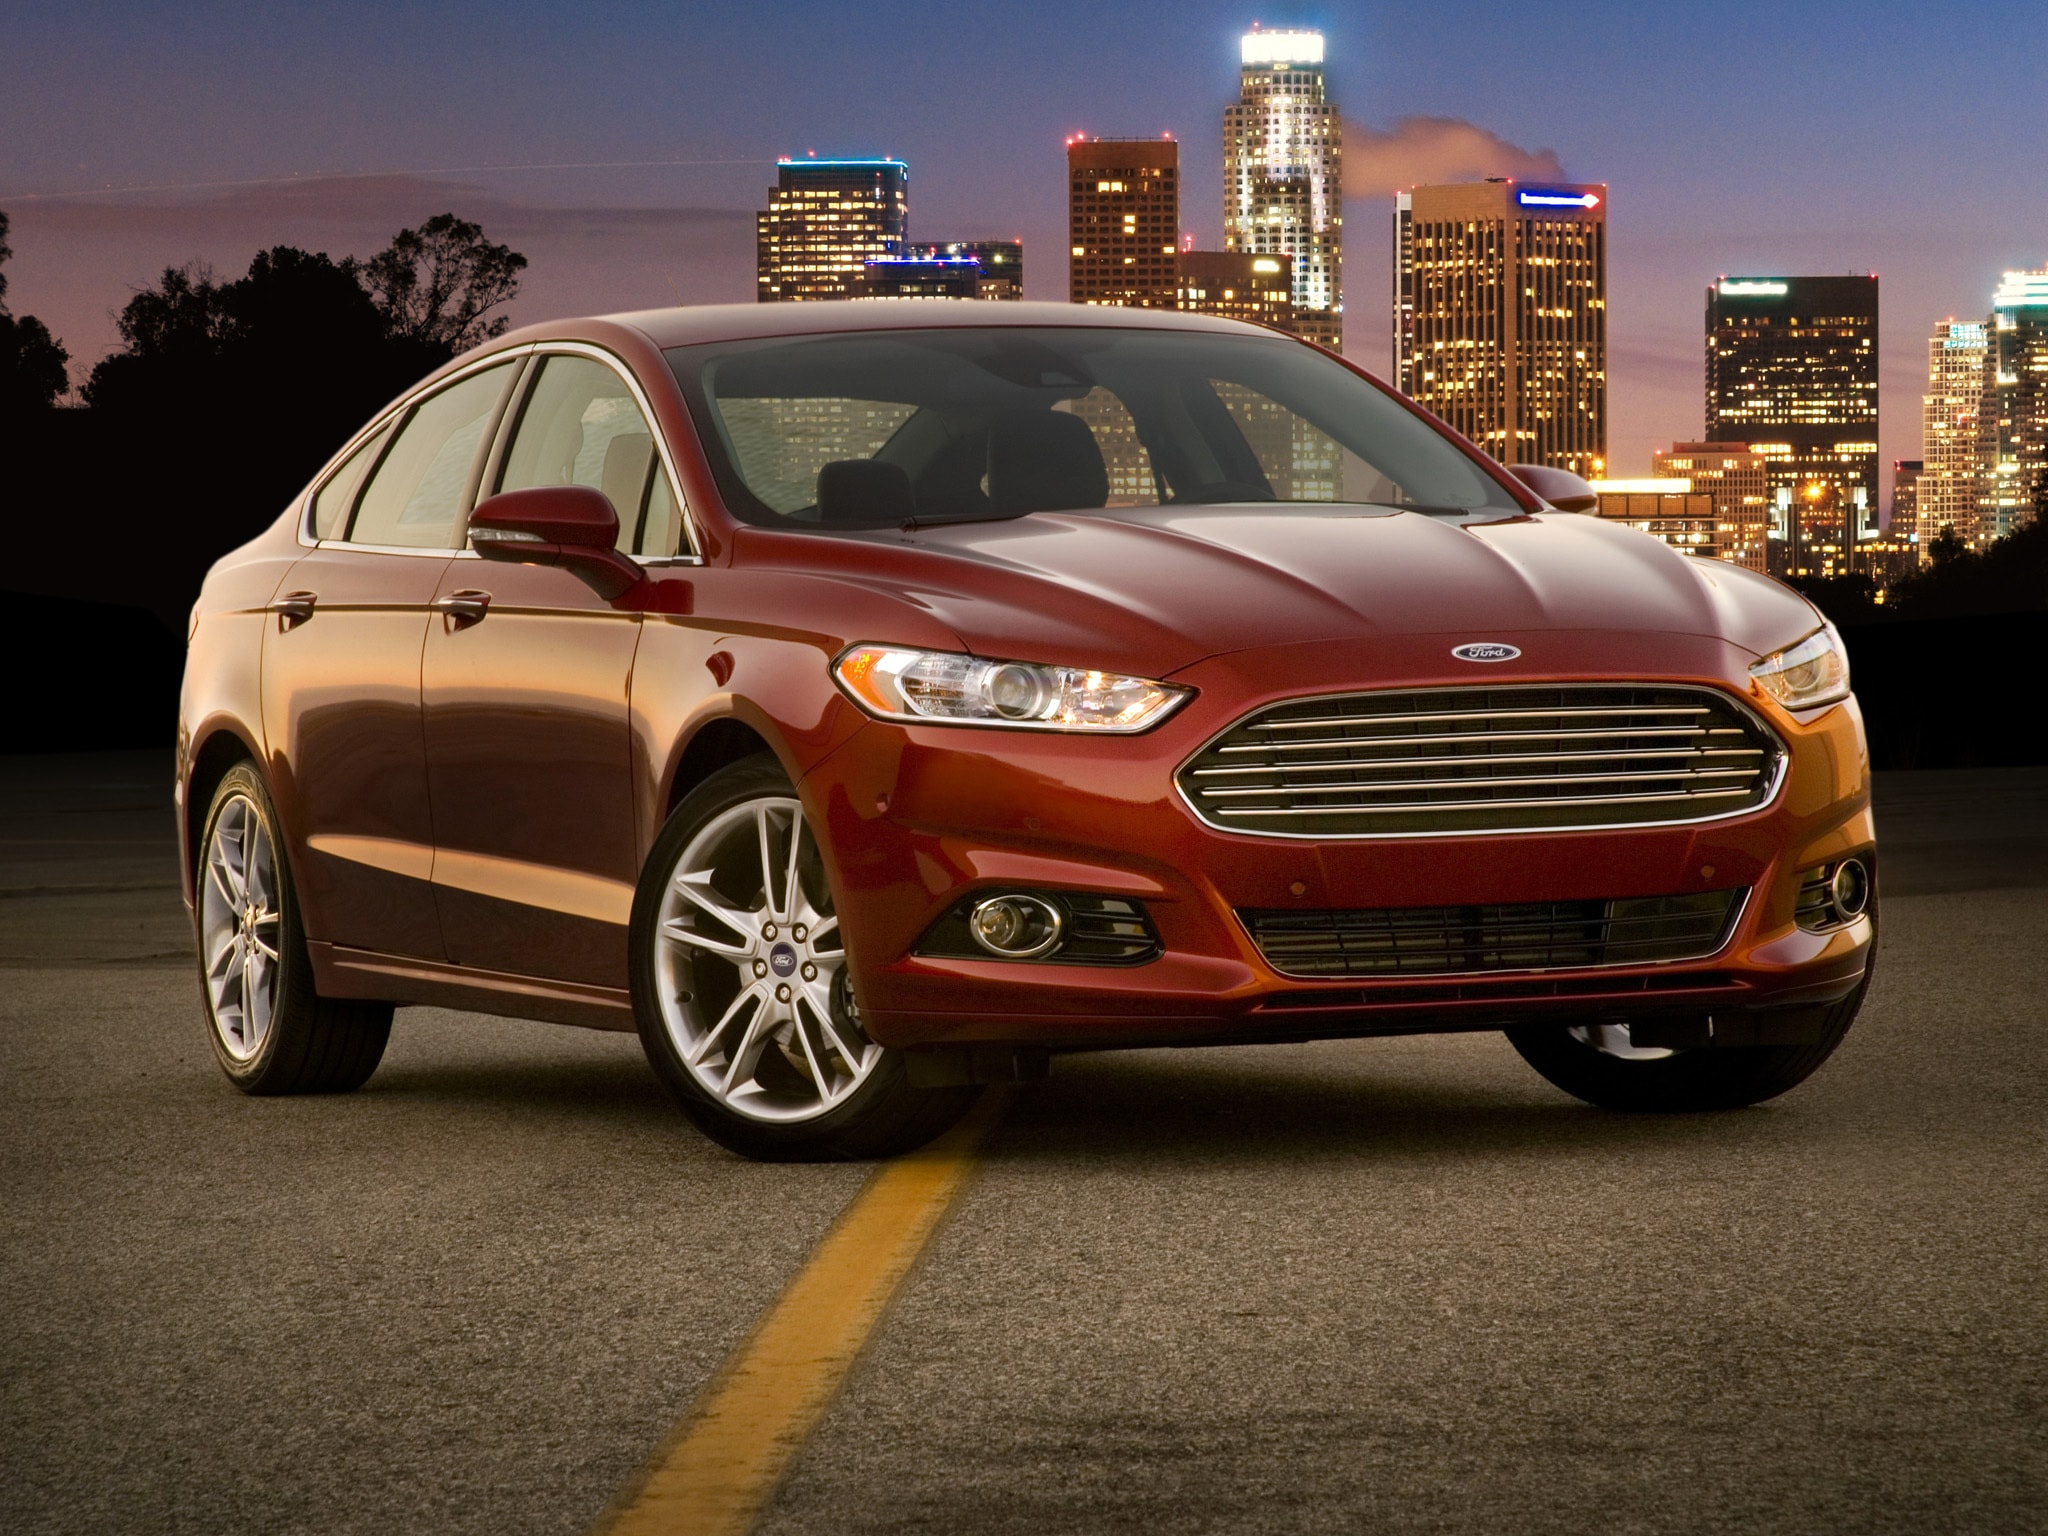 2013 Ford Fusion Backgrounds